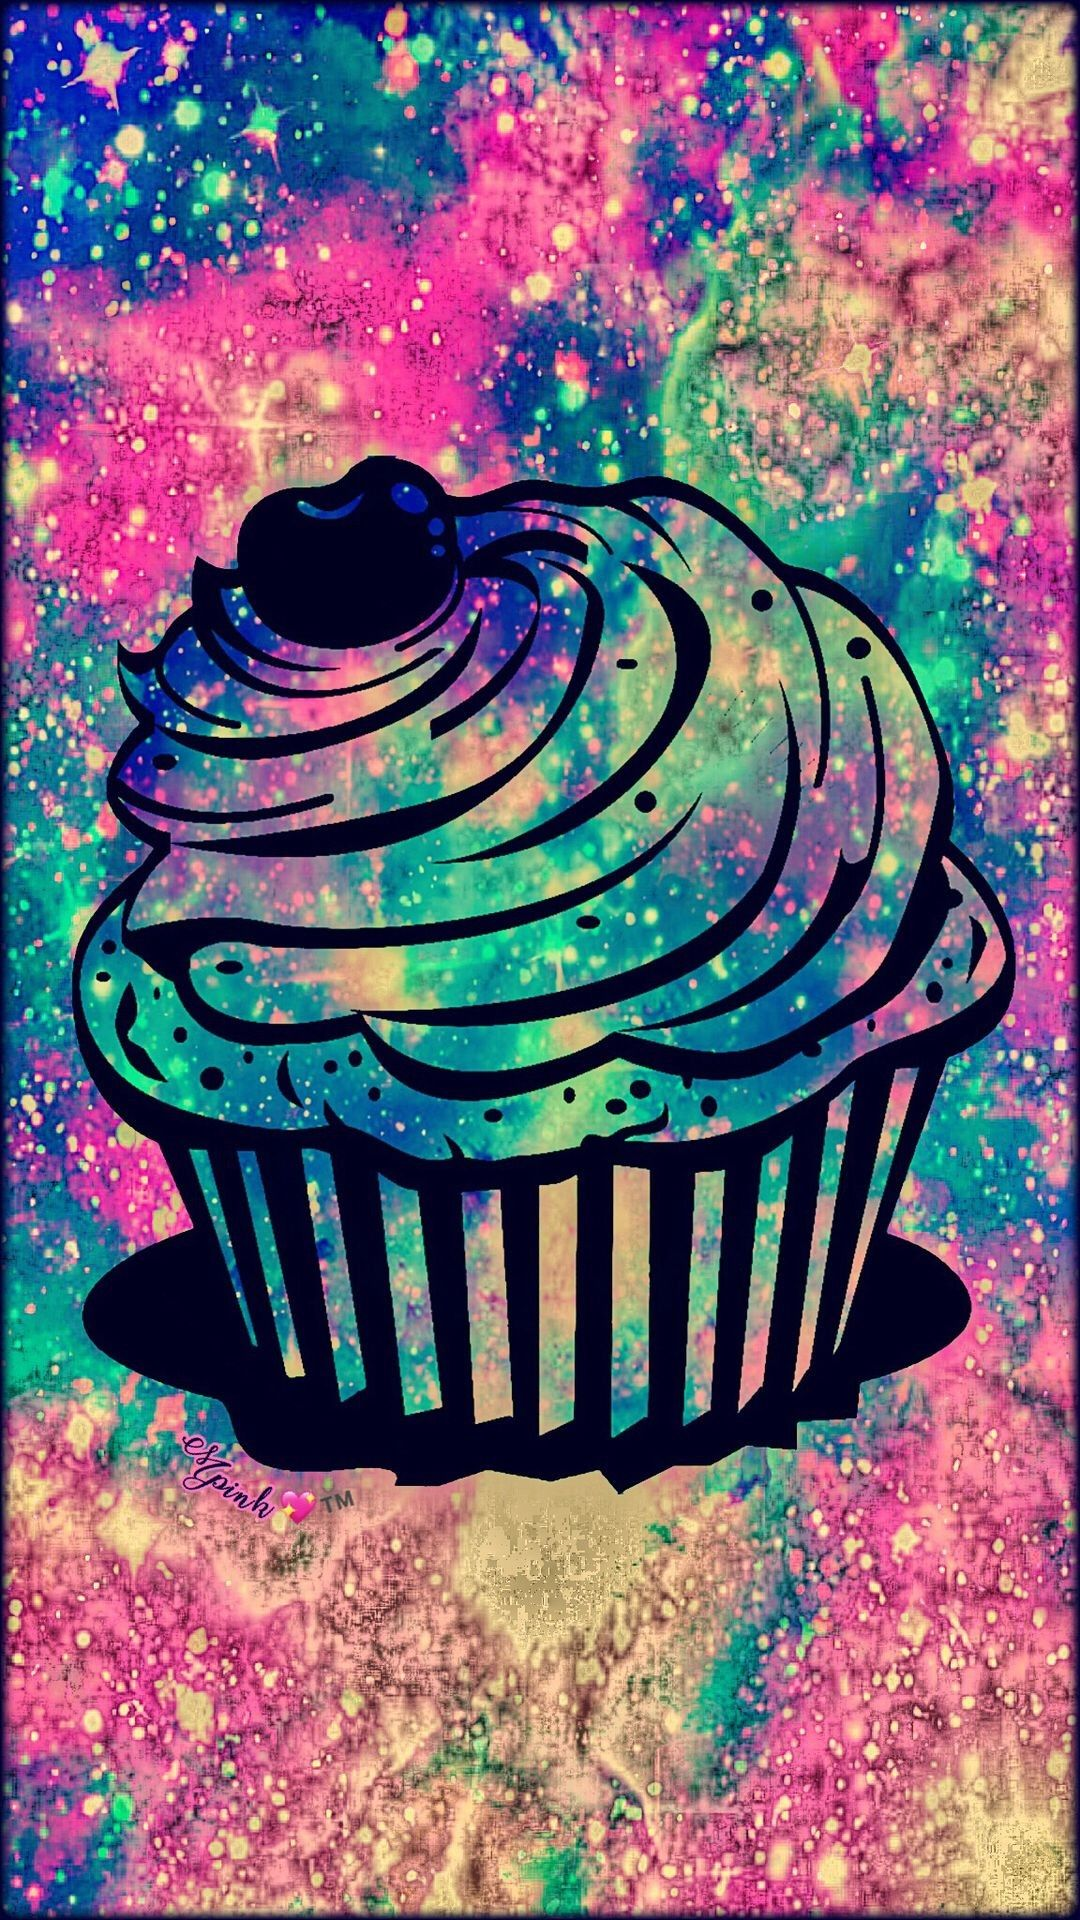 Glitter Blue And Silver Picture Iphone Wallpaper Glitter Cupcakes Wallpaper Pink And Green Wallpaper